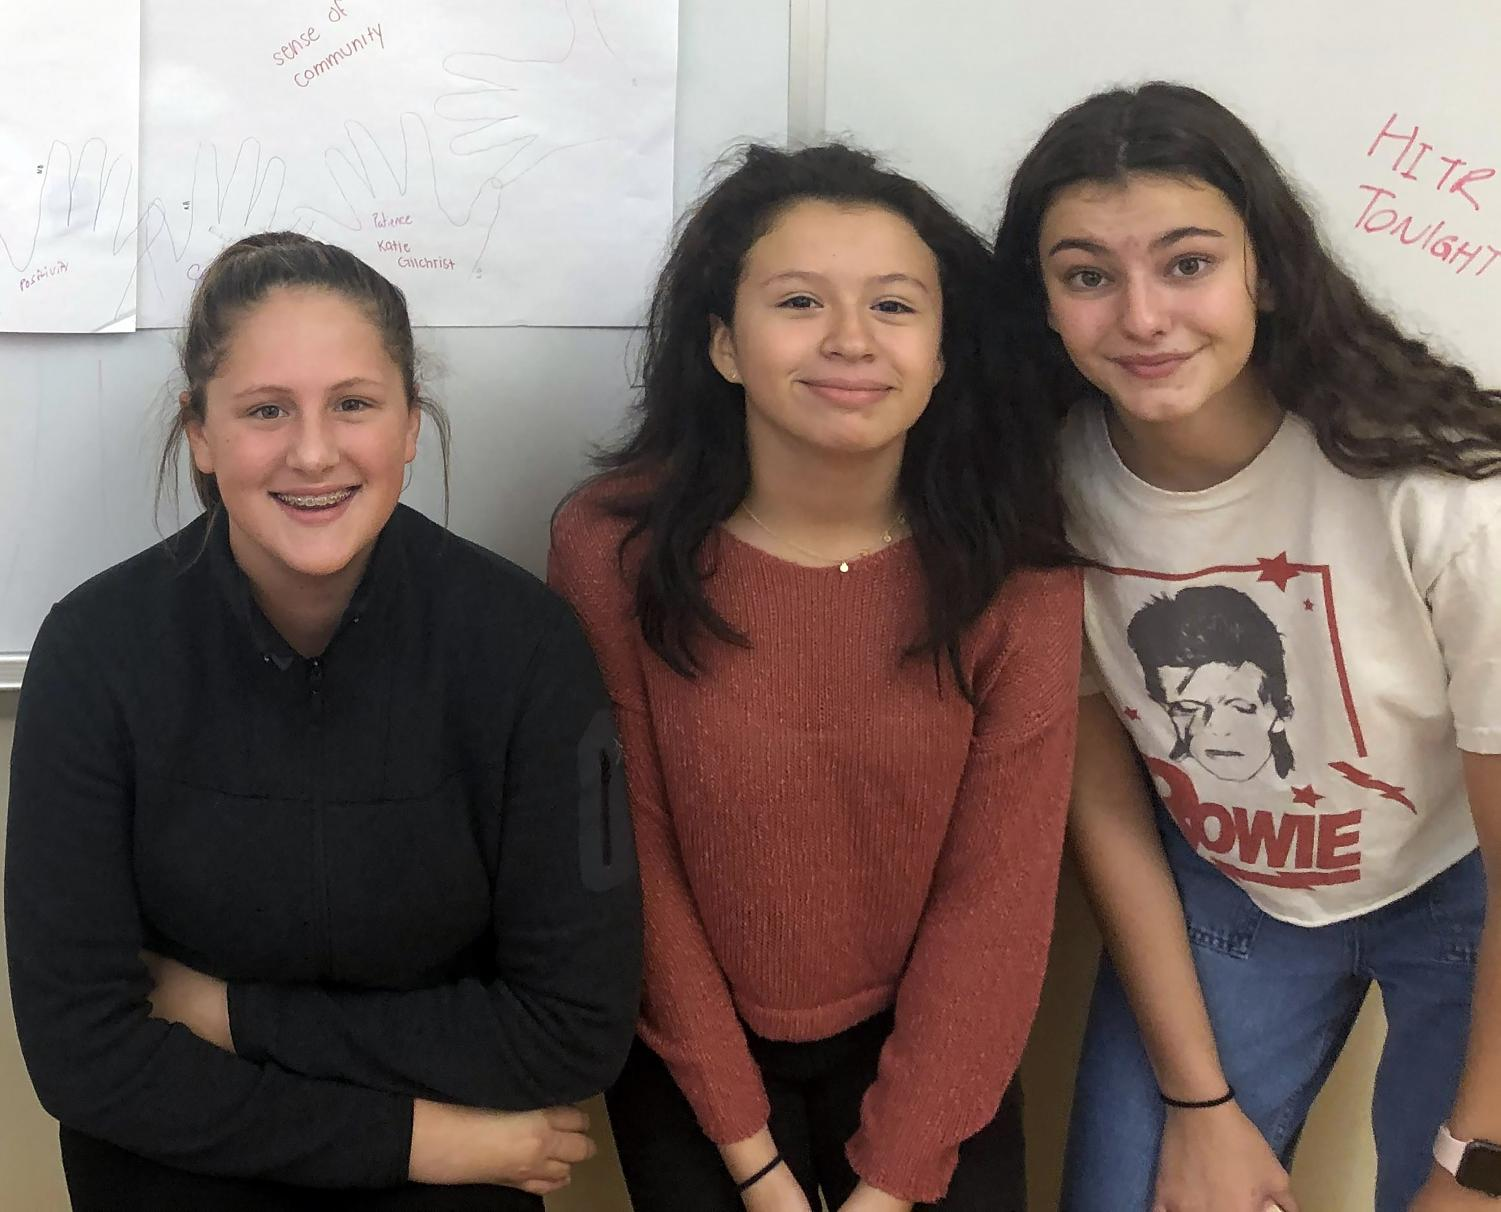 (l to r): Freshmen Julia Gunster, Sorany Campo, and Anna Gambone are learning a lot from their senior mentors!